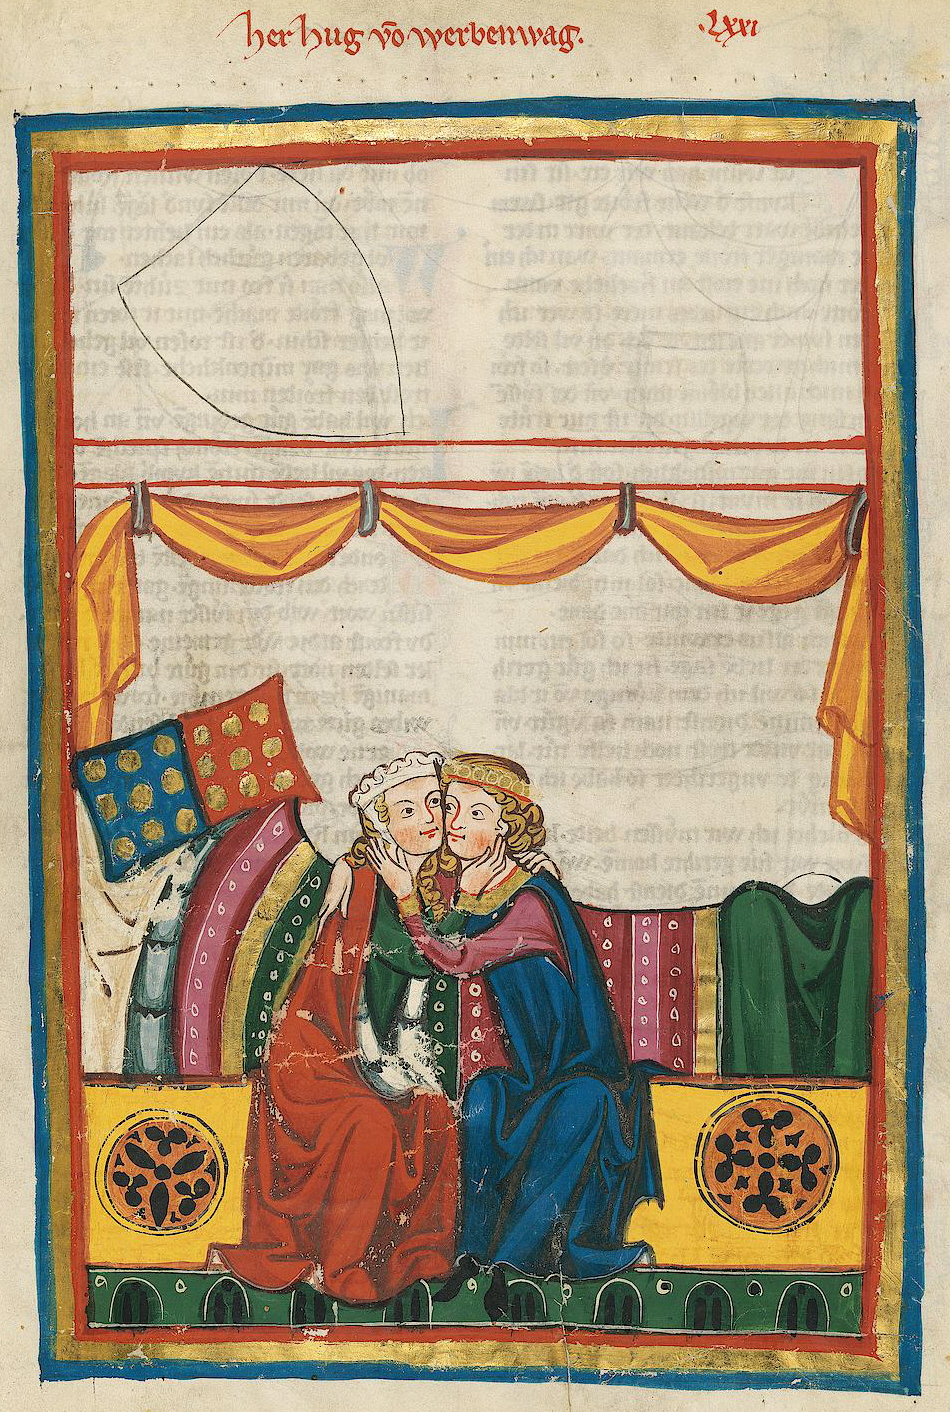 Meister des Codex Manesse